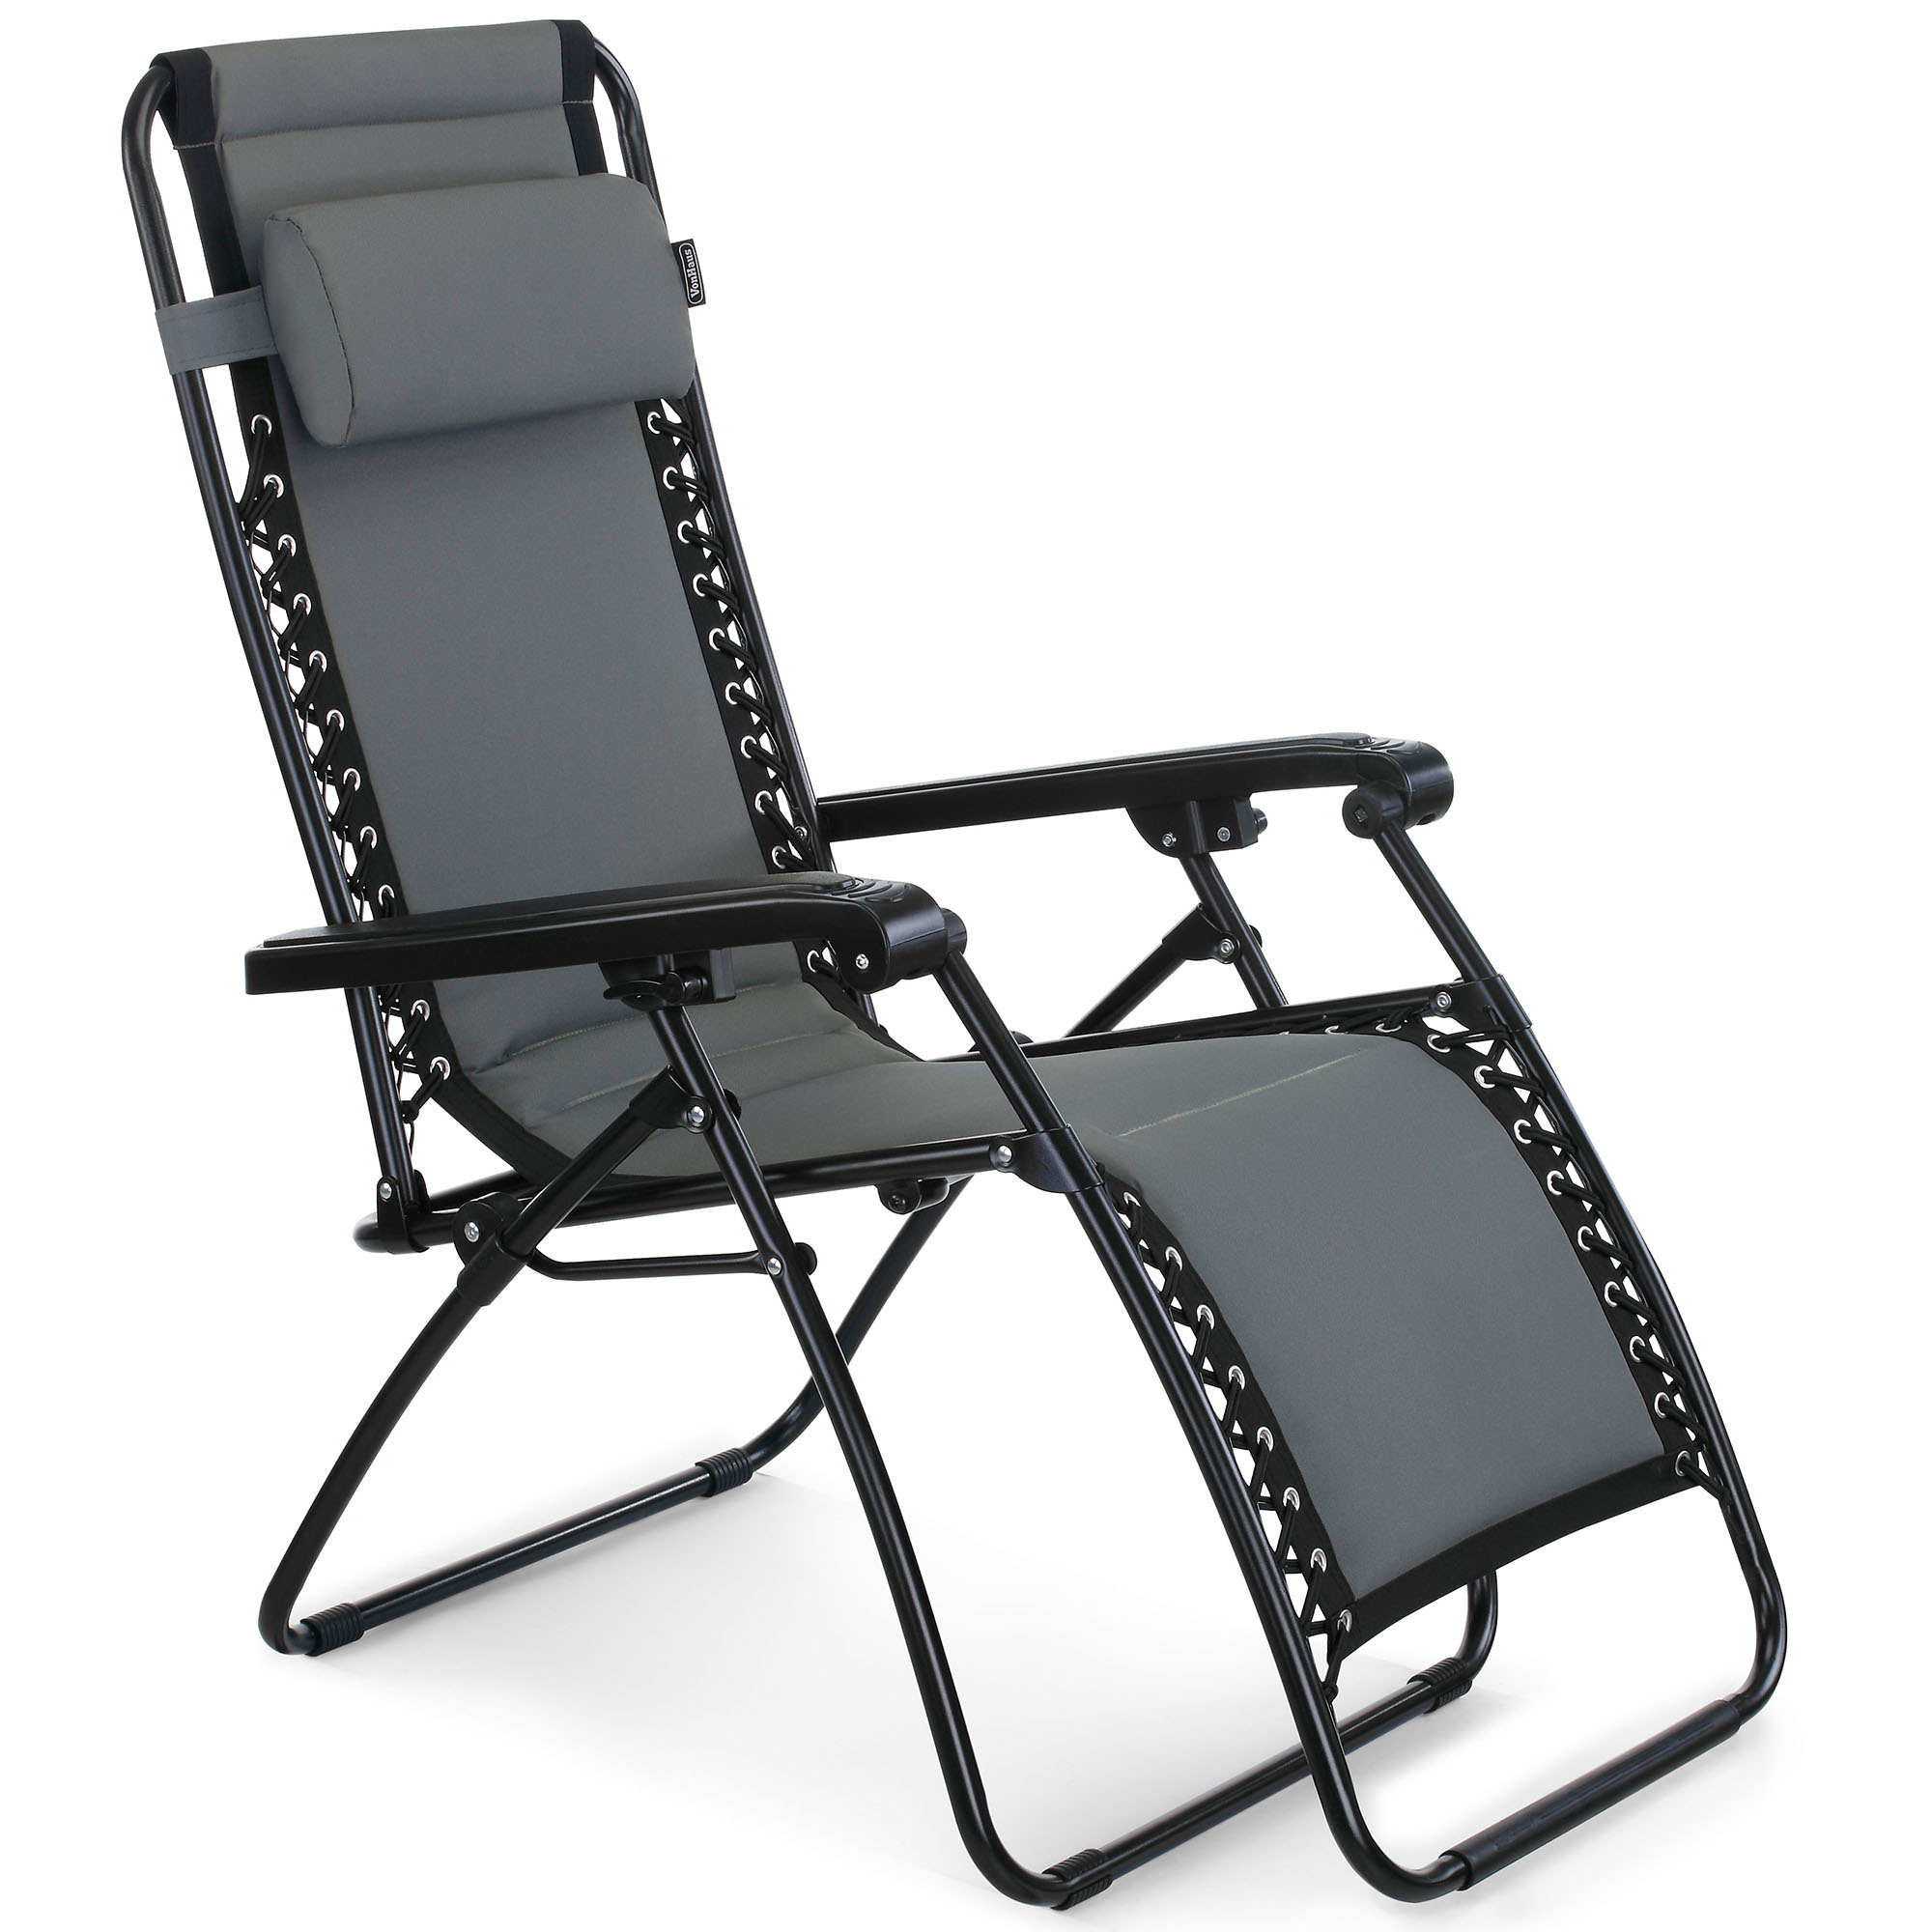 Vonhaus Padded Zero Gravity Chair Outdoor Garden Patio Sun Lounger Recliner Ebay